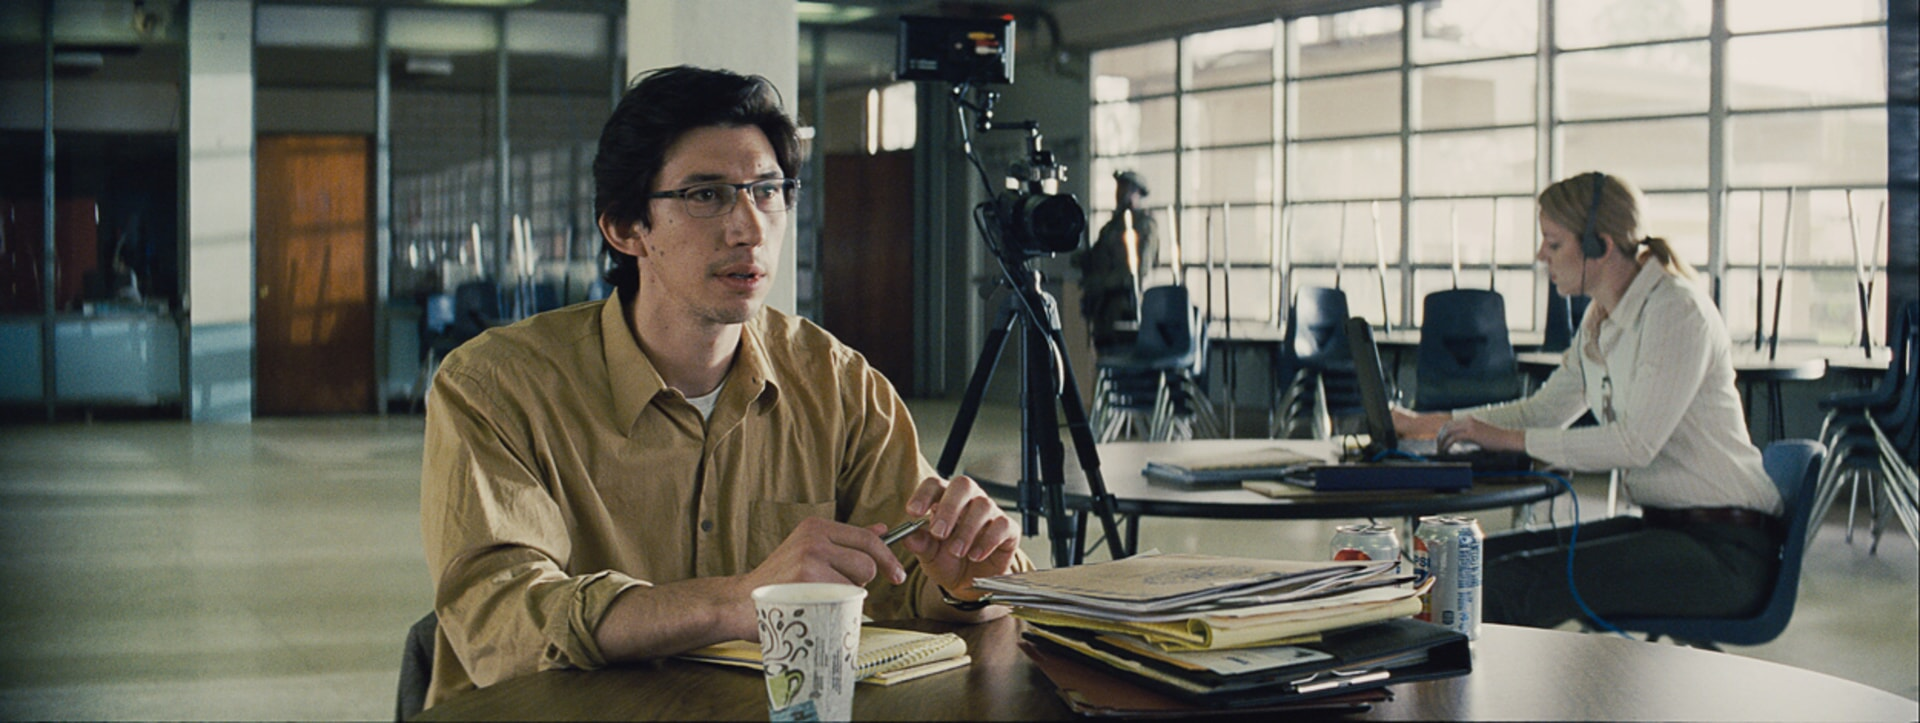 "ADAM DRIVER as Sevier in director Jeff Nichols' sci-fi thriller ""MIDNIGHT SPECIAL,"""